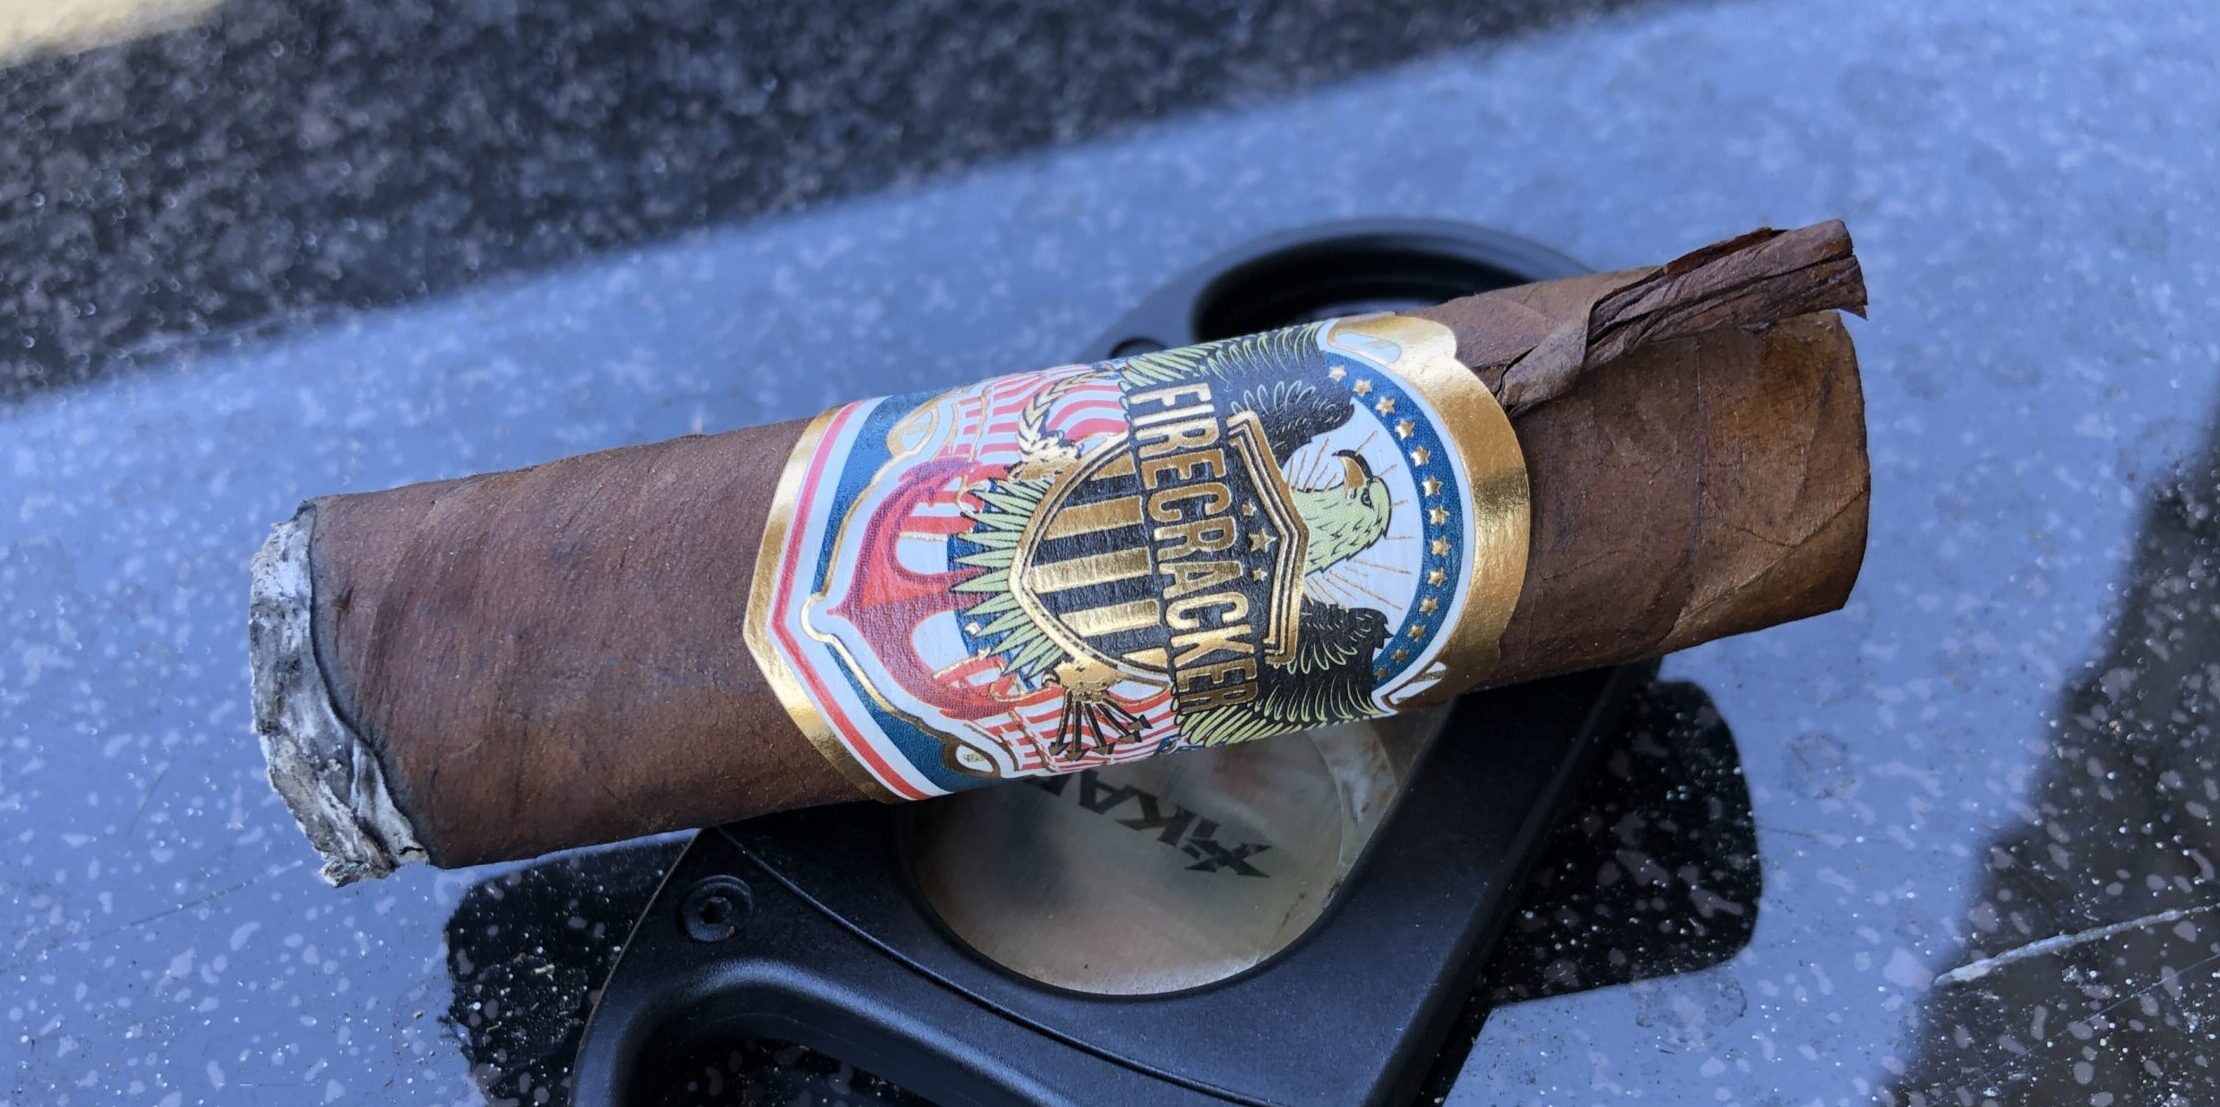 Read more about the article United Cigars 2021 Firecracker Short Robusto Cigar Review